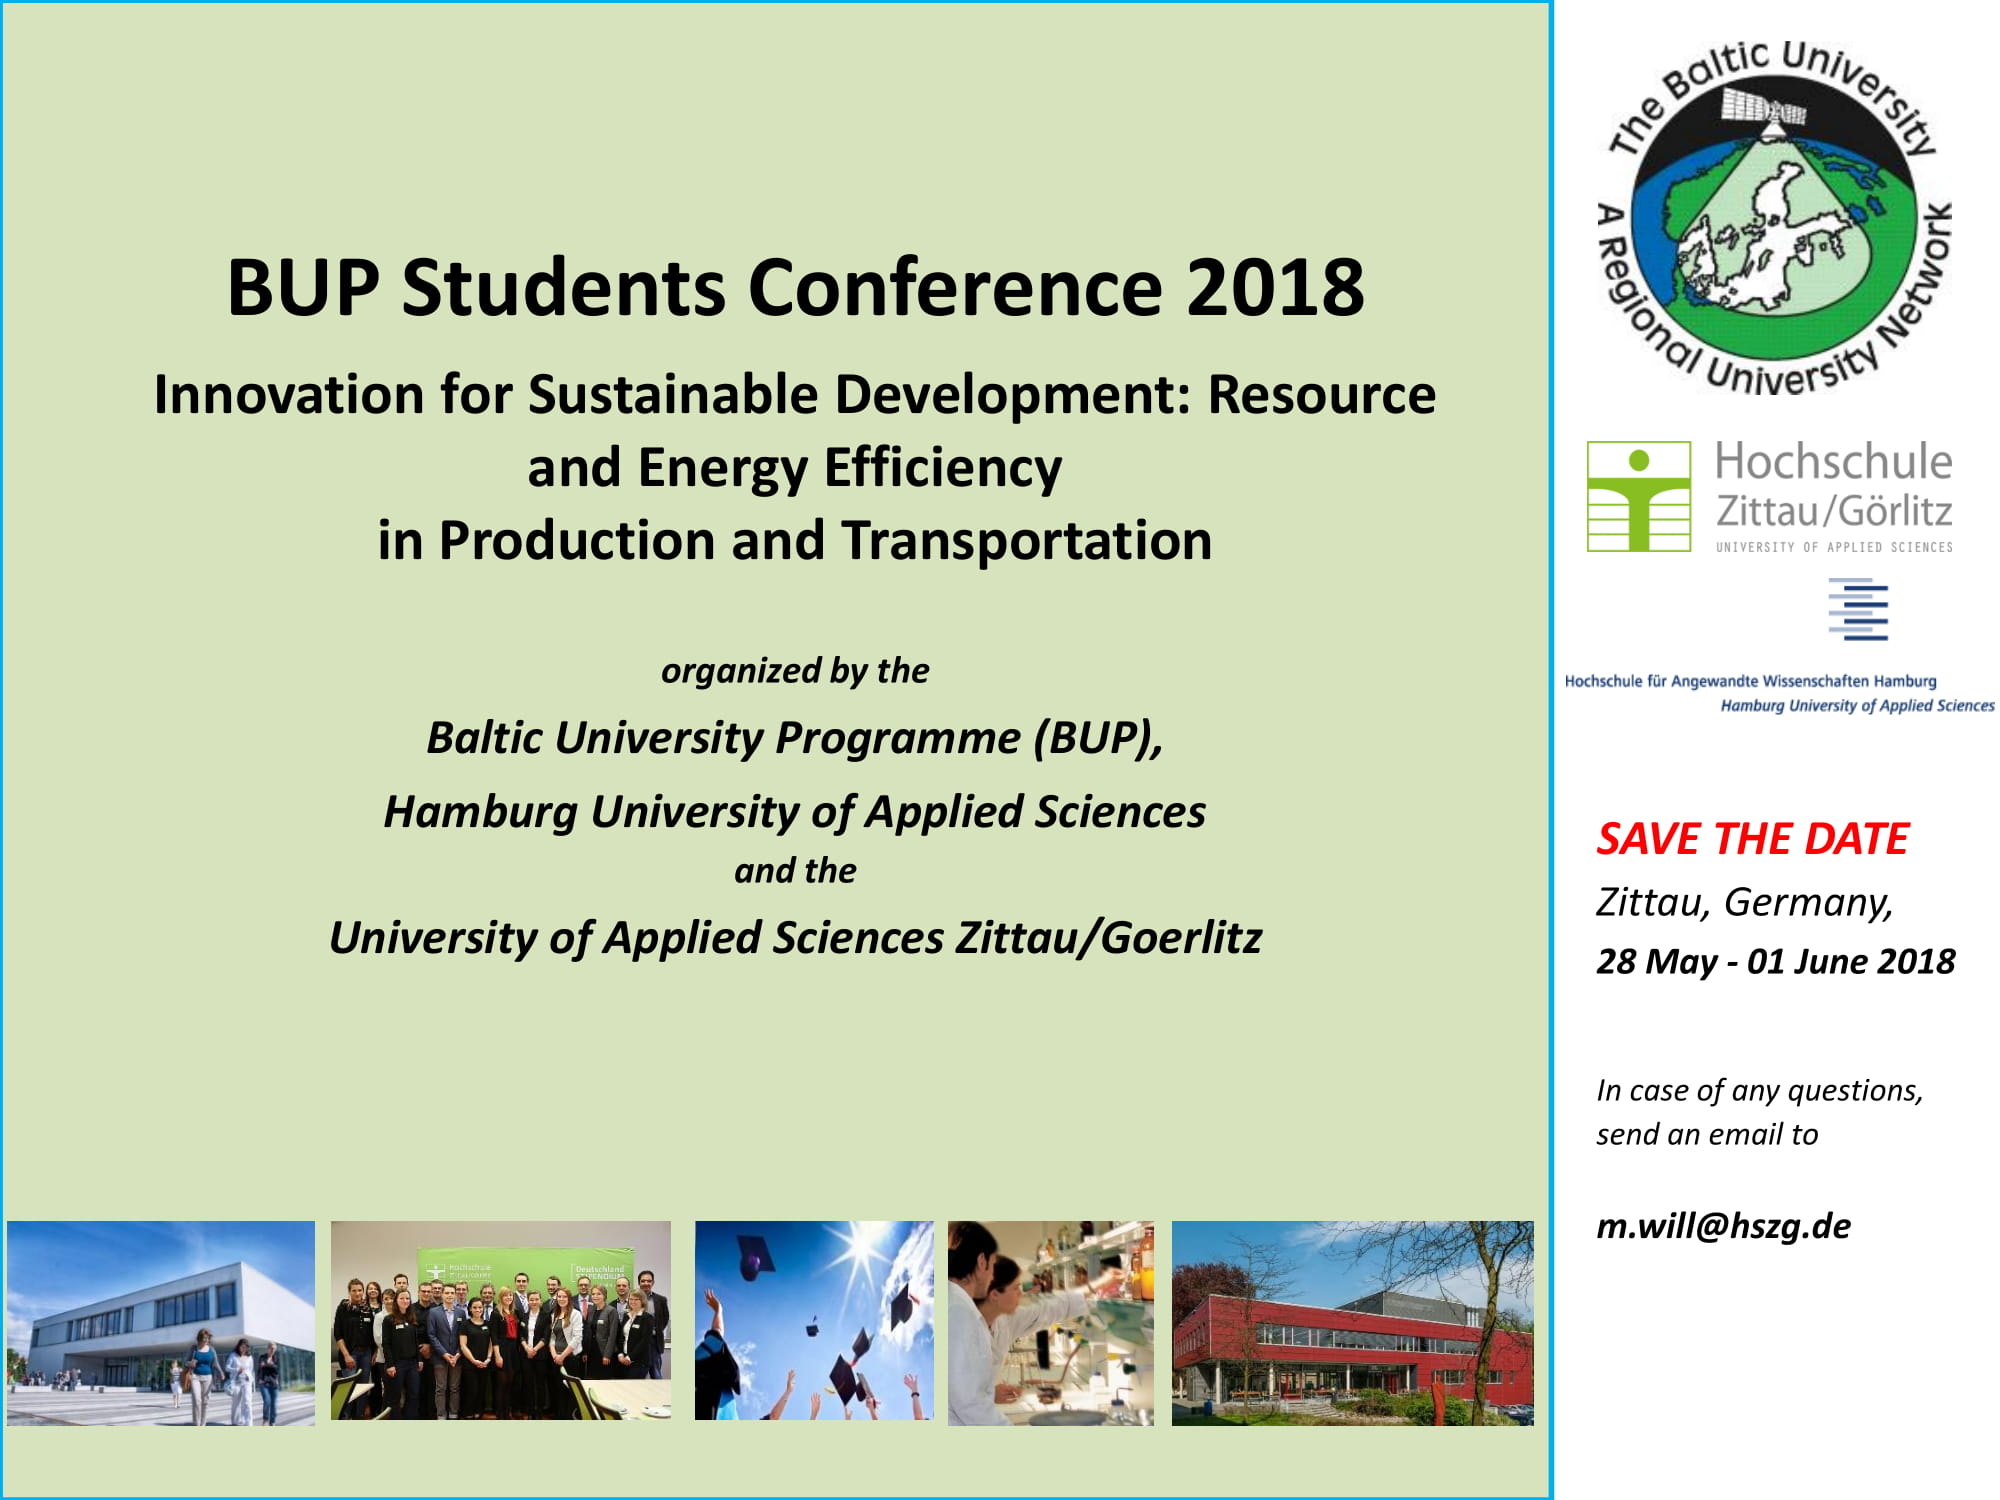 BUP Spring Students' Conference, 28th May - 01st June 2018, in Großschönau /Zittau